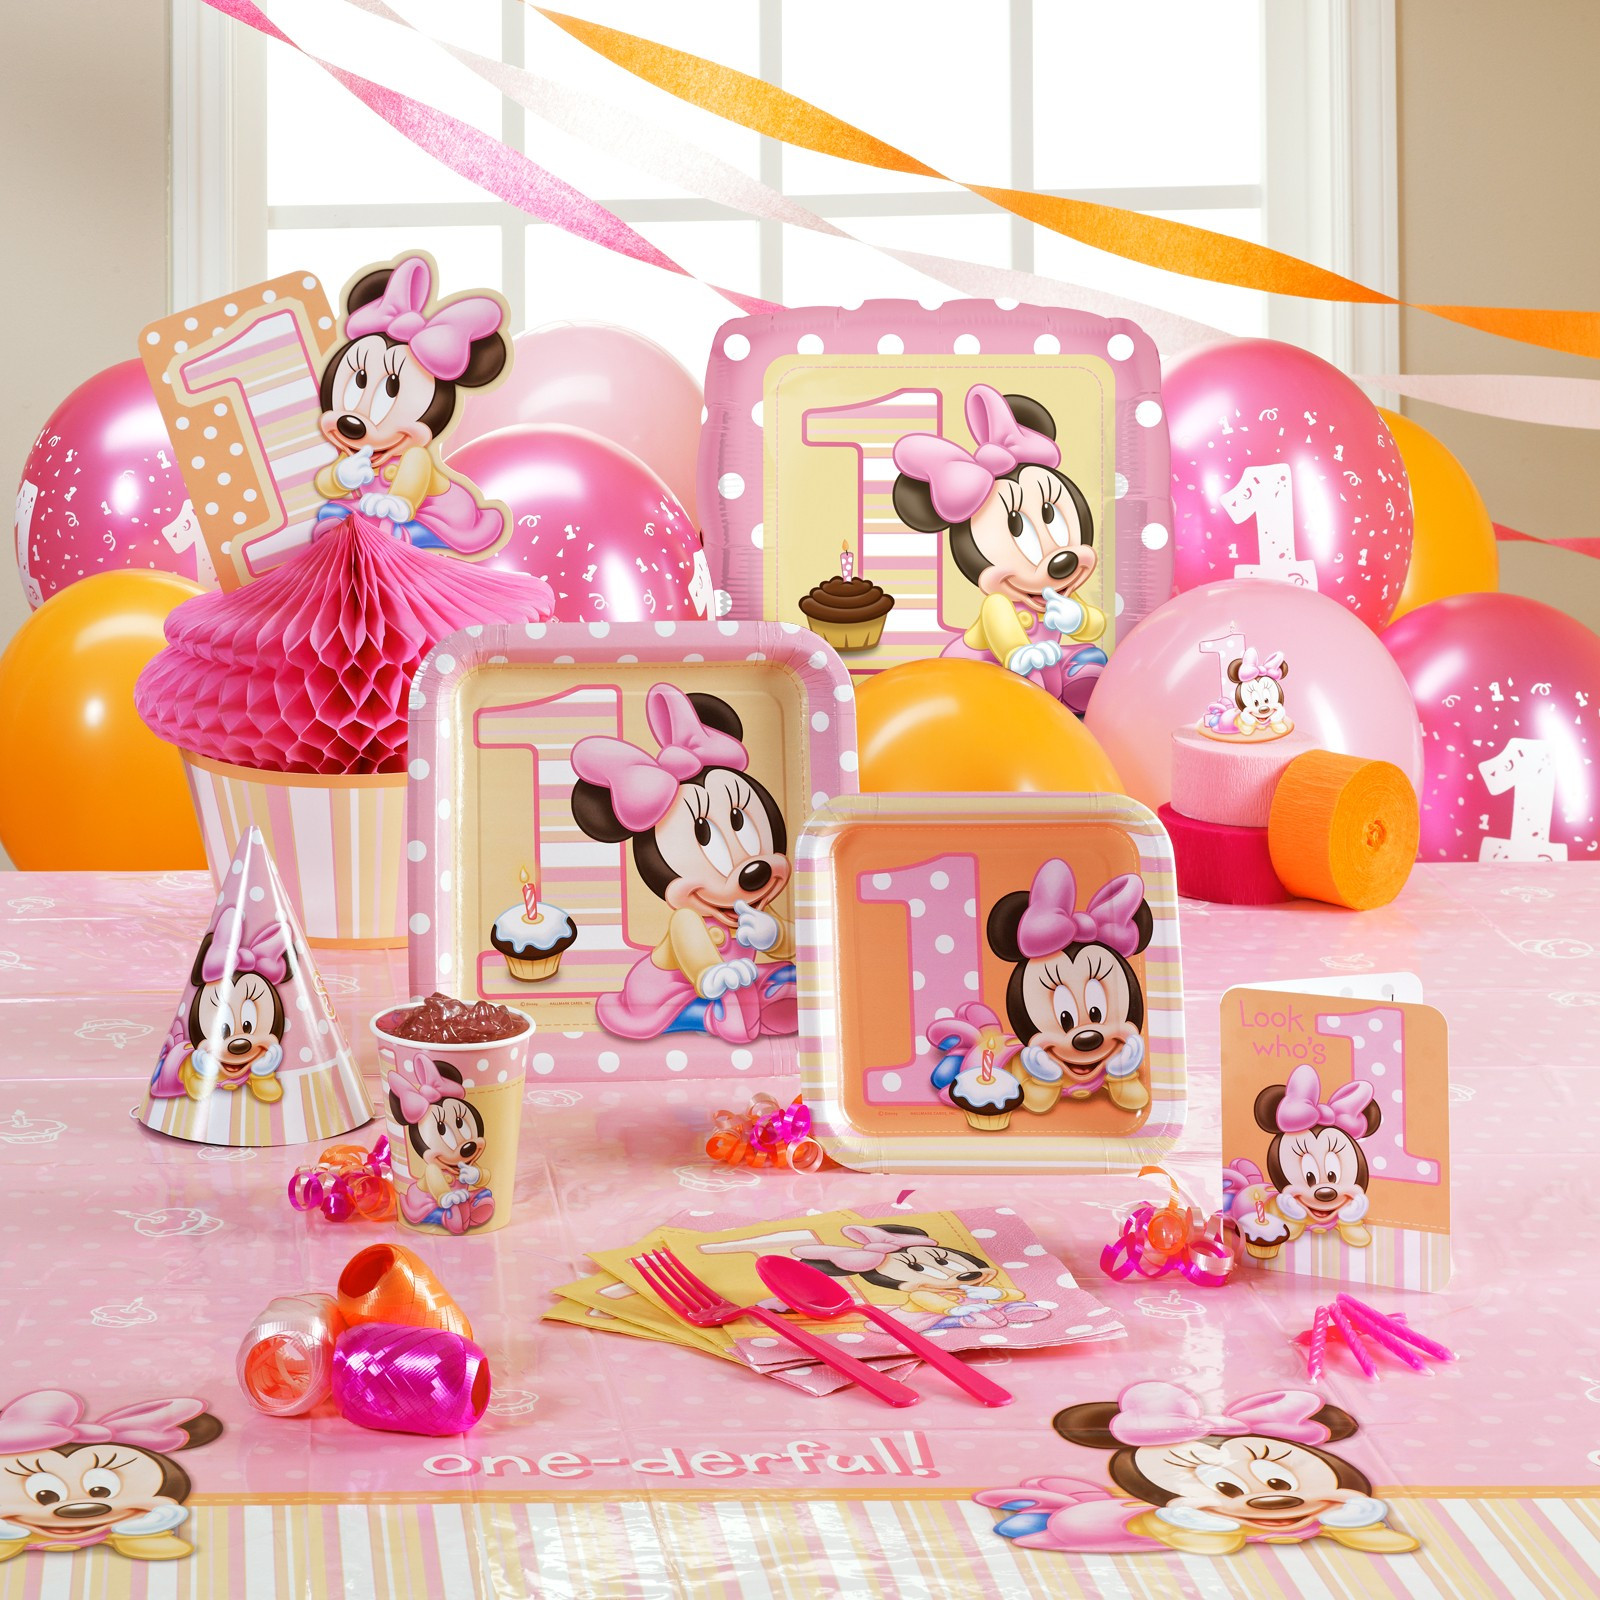 first birthday party themes ; themes-birthday-baby-girl-first-birthday-themes-baby-girl-first-design-of-birthday-party-decorations-for-1-year-old-of-birthday-party-decorations-for-1-year-old